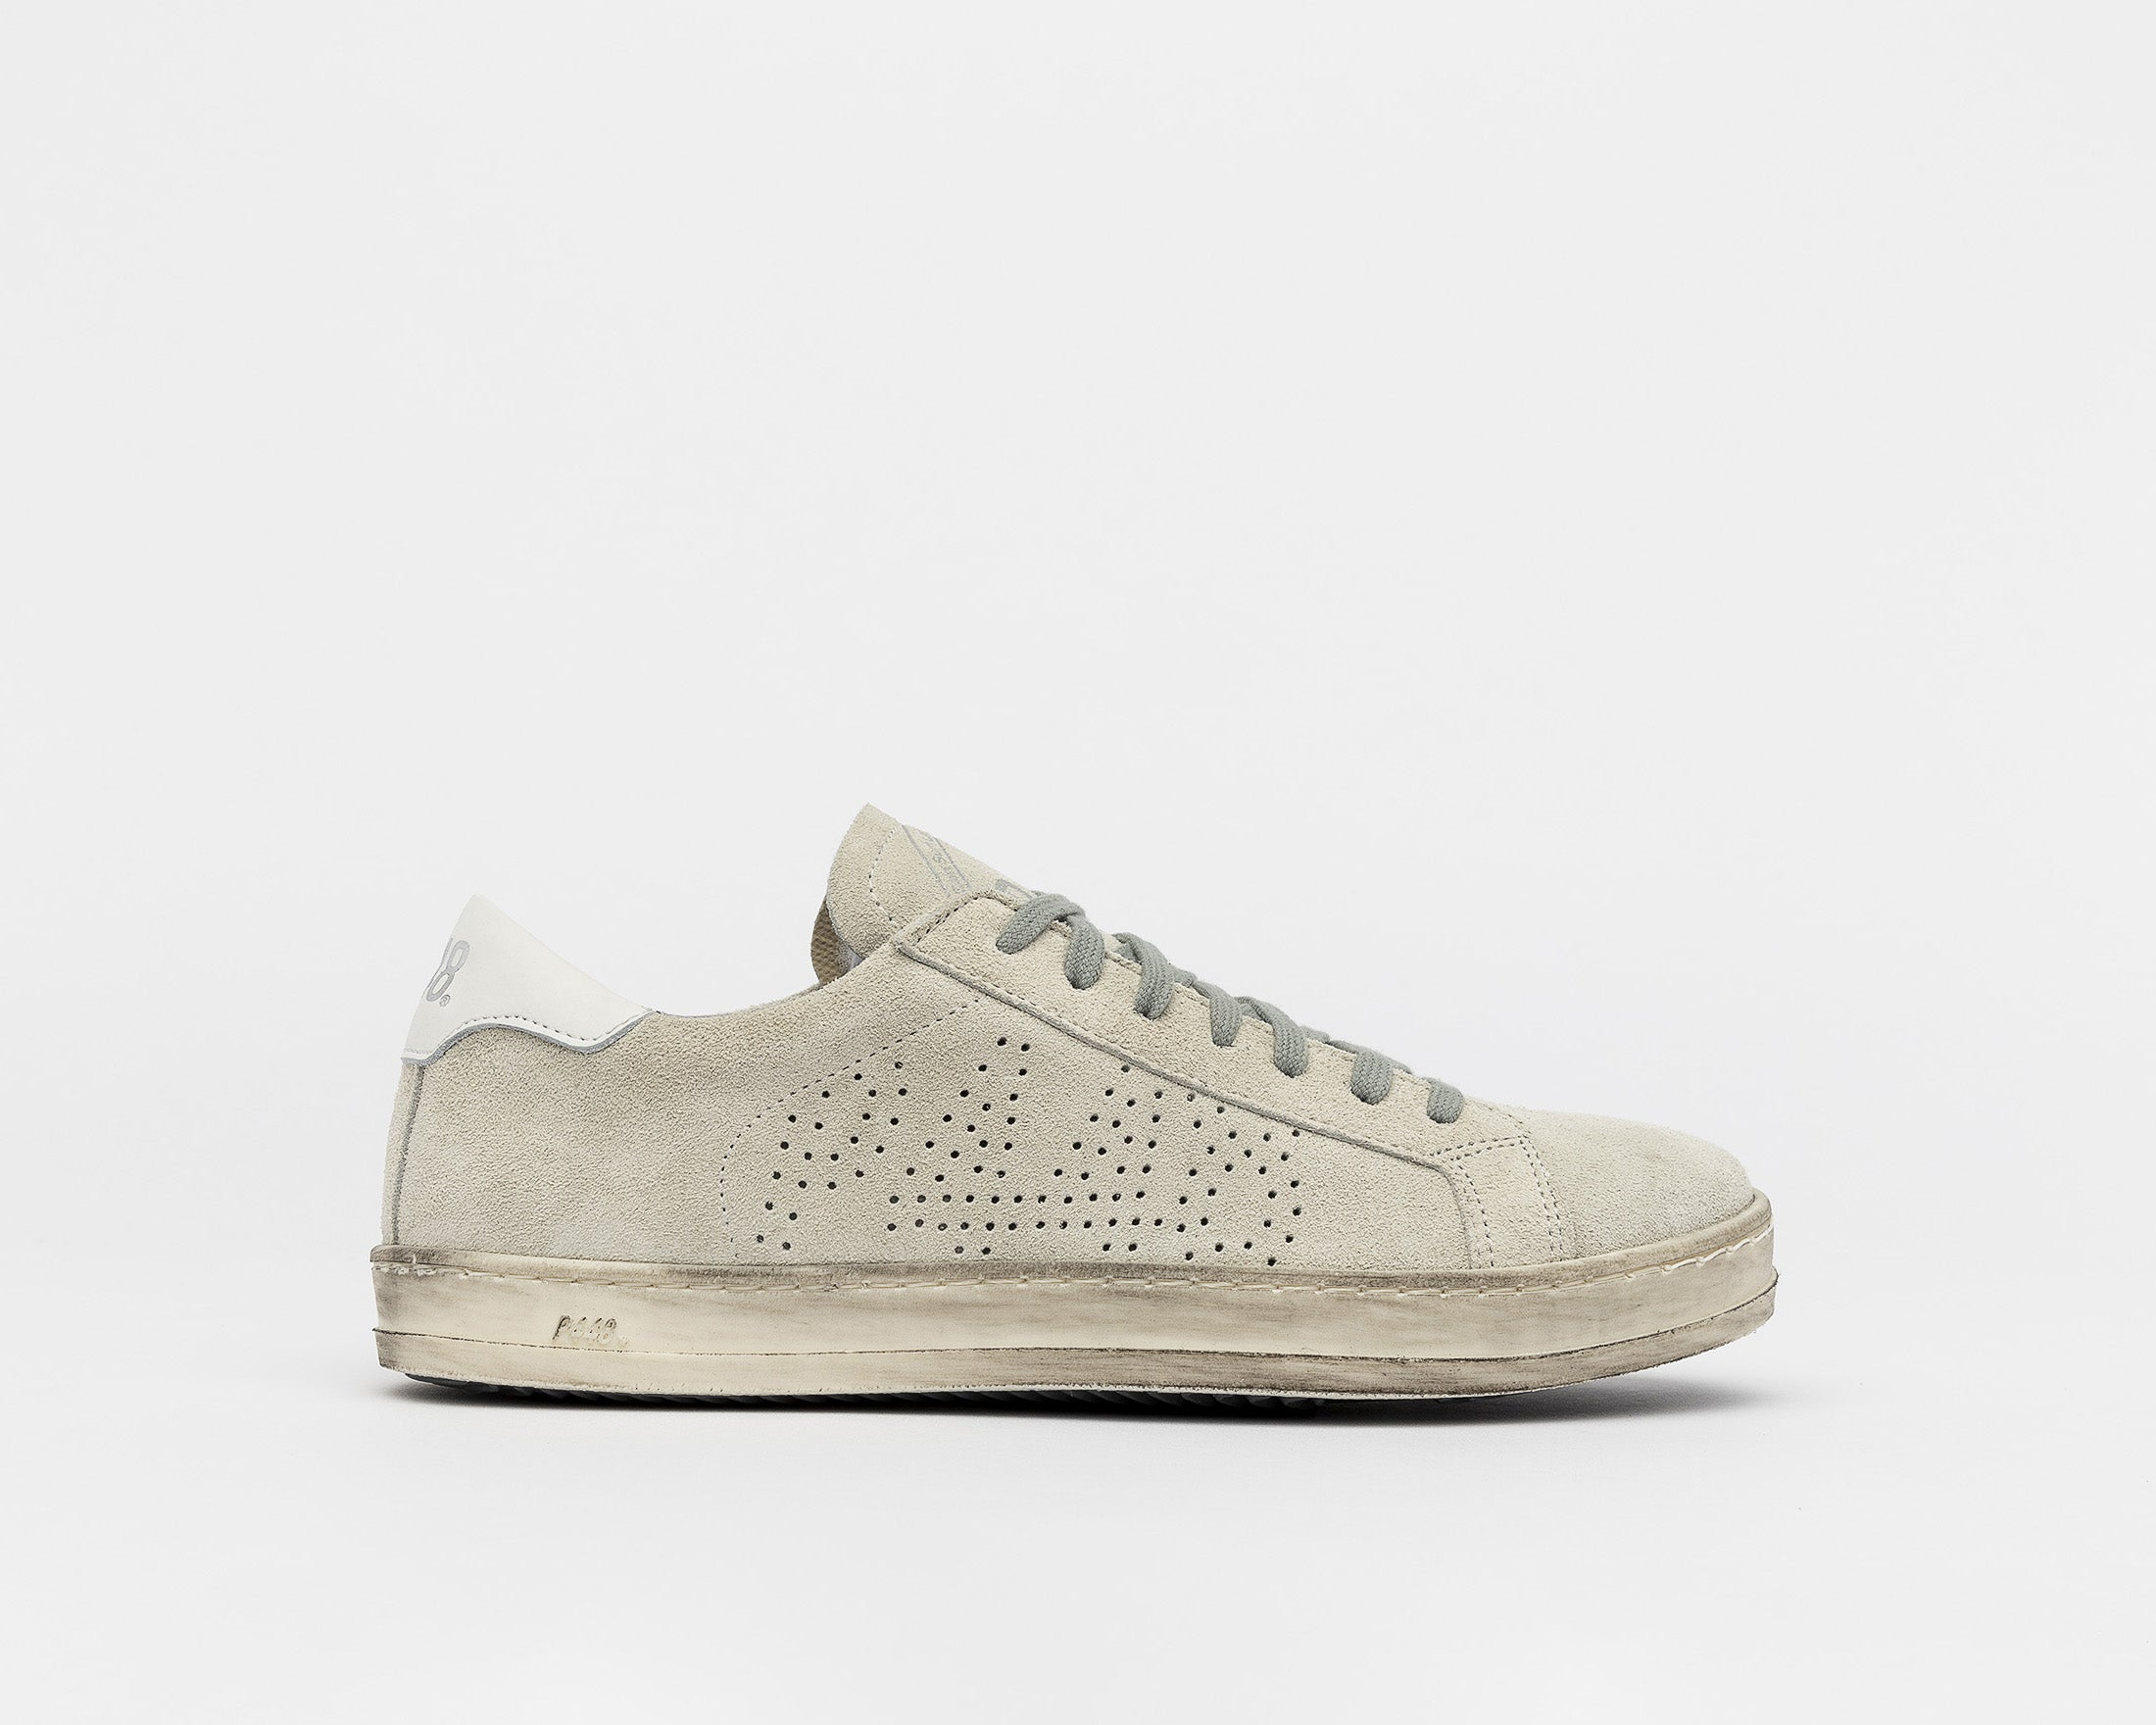 John Low-Top Sneaker - Cac/White - Profile